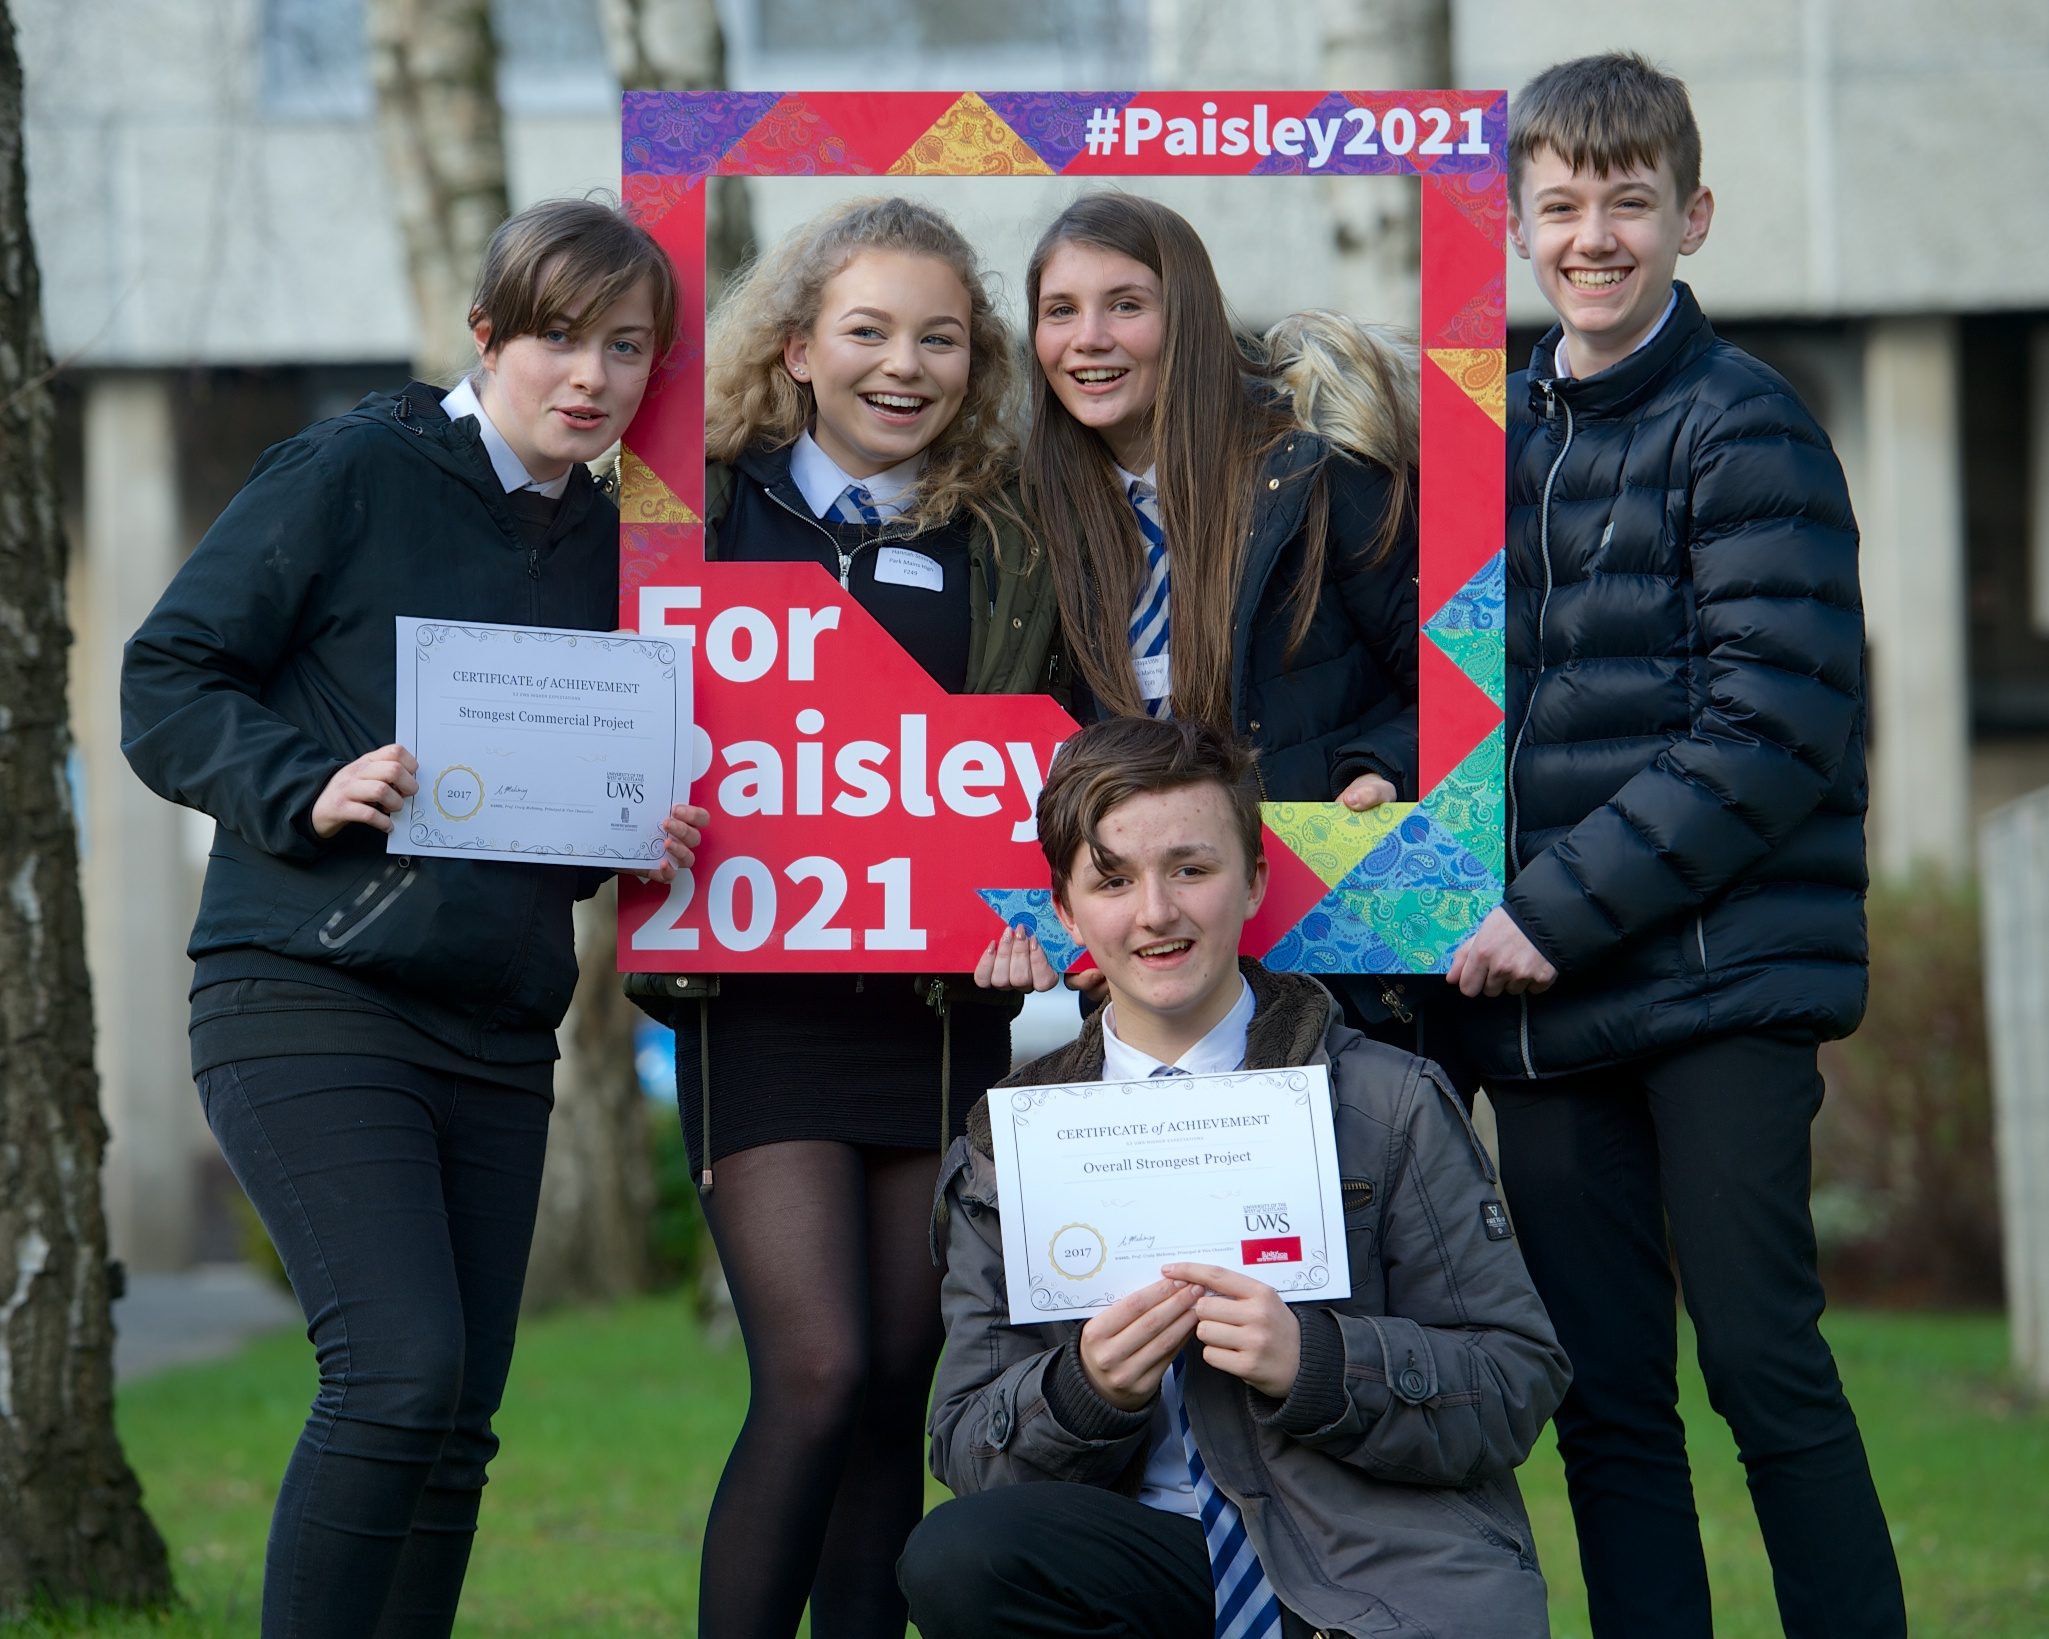 S3 pupils asked to help shape 2021 bid